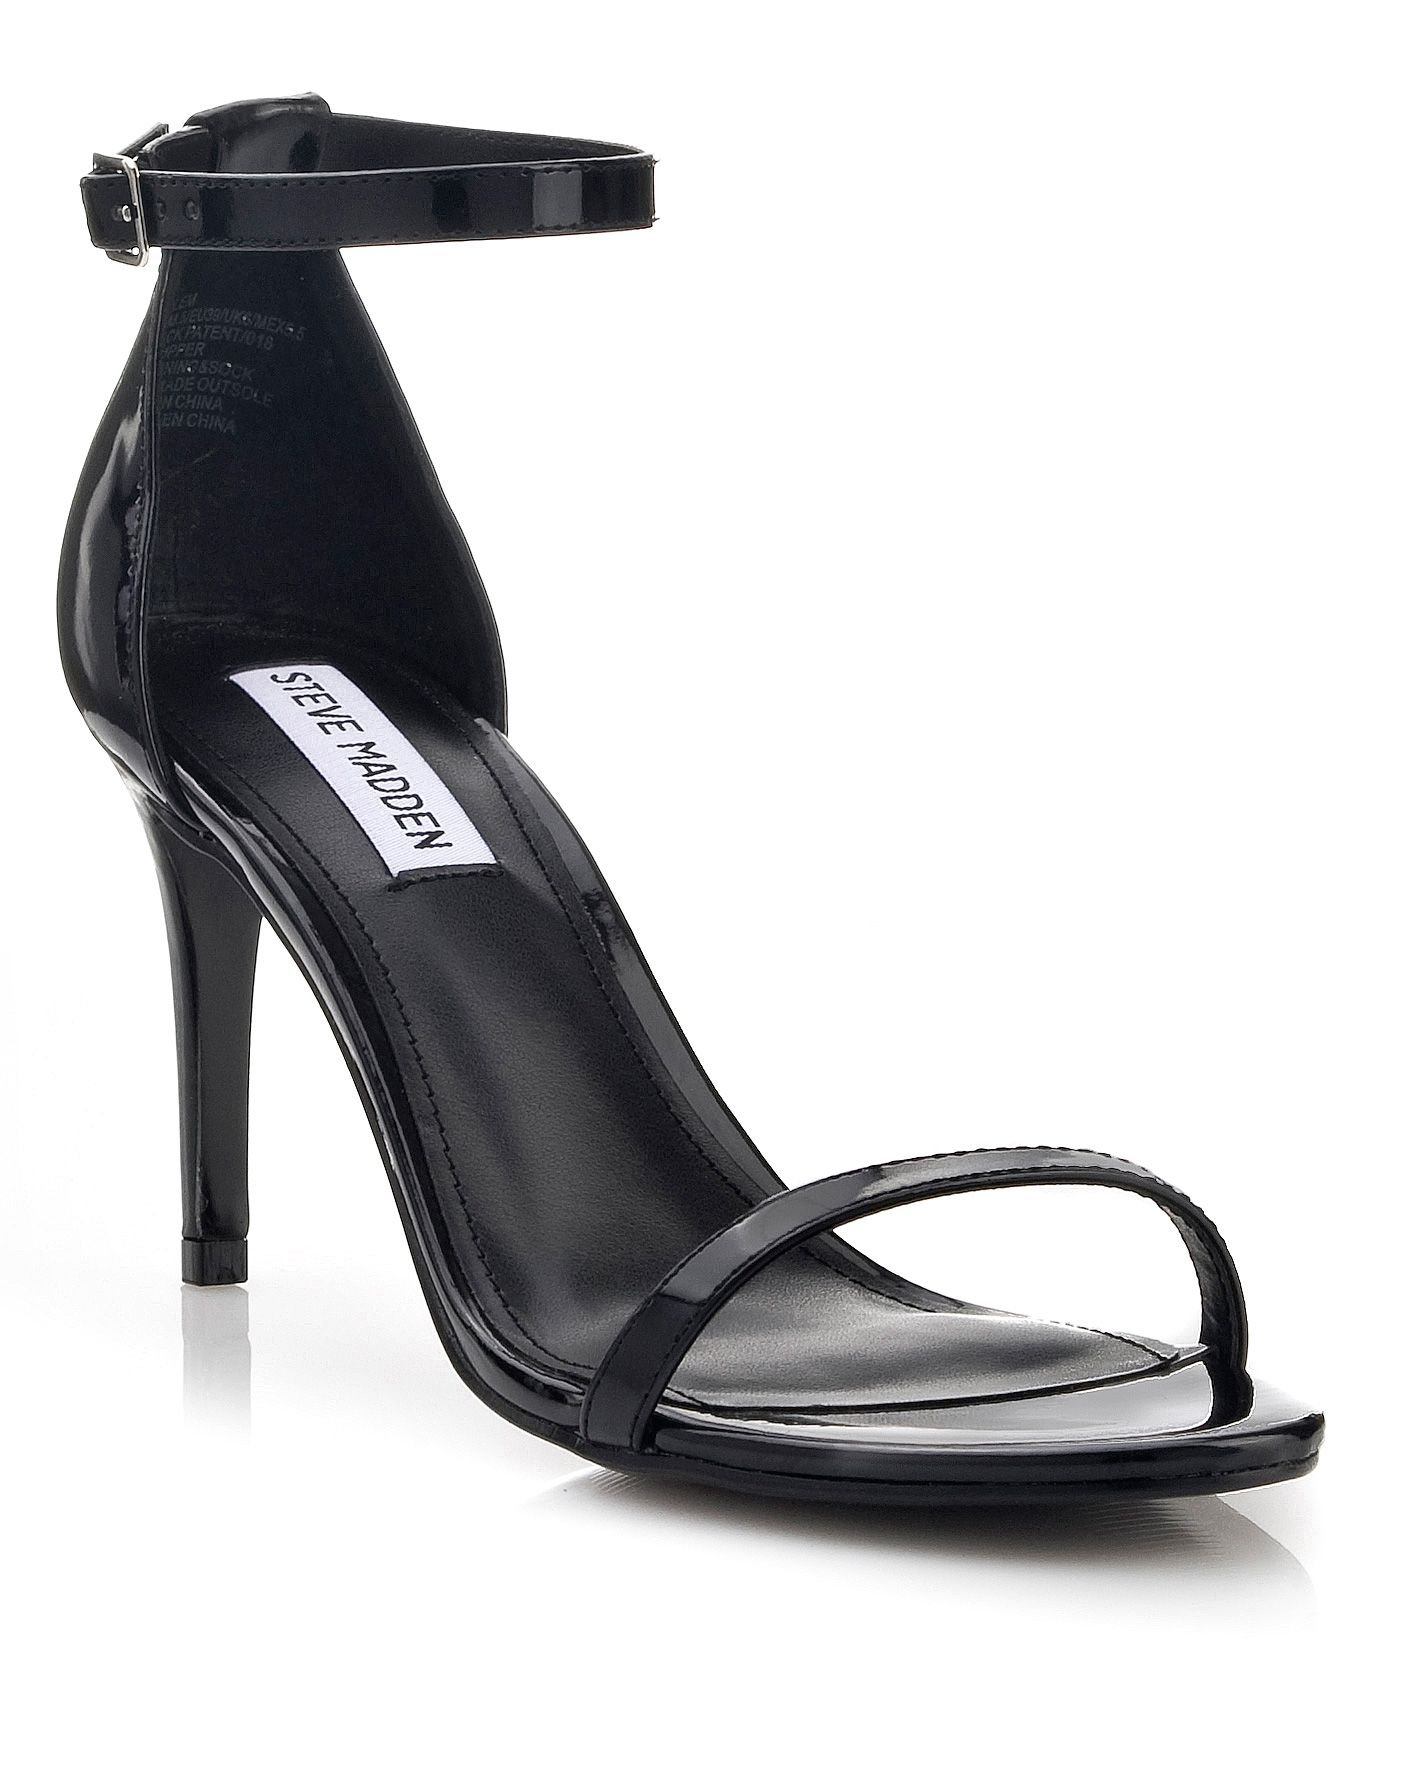 e30d84a70863 Steve Madden SALEM Black. Find this Pin and more on Steve Madden Spring  Summer 2018 by NAK shoes.